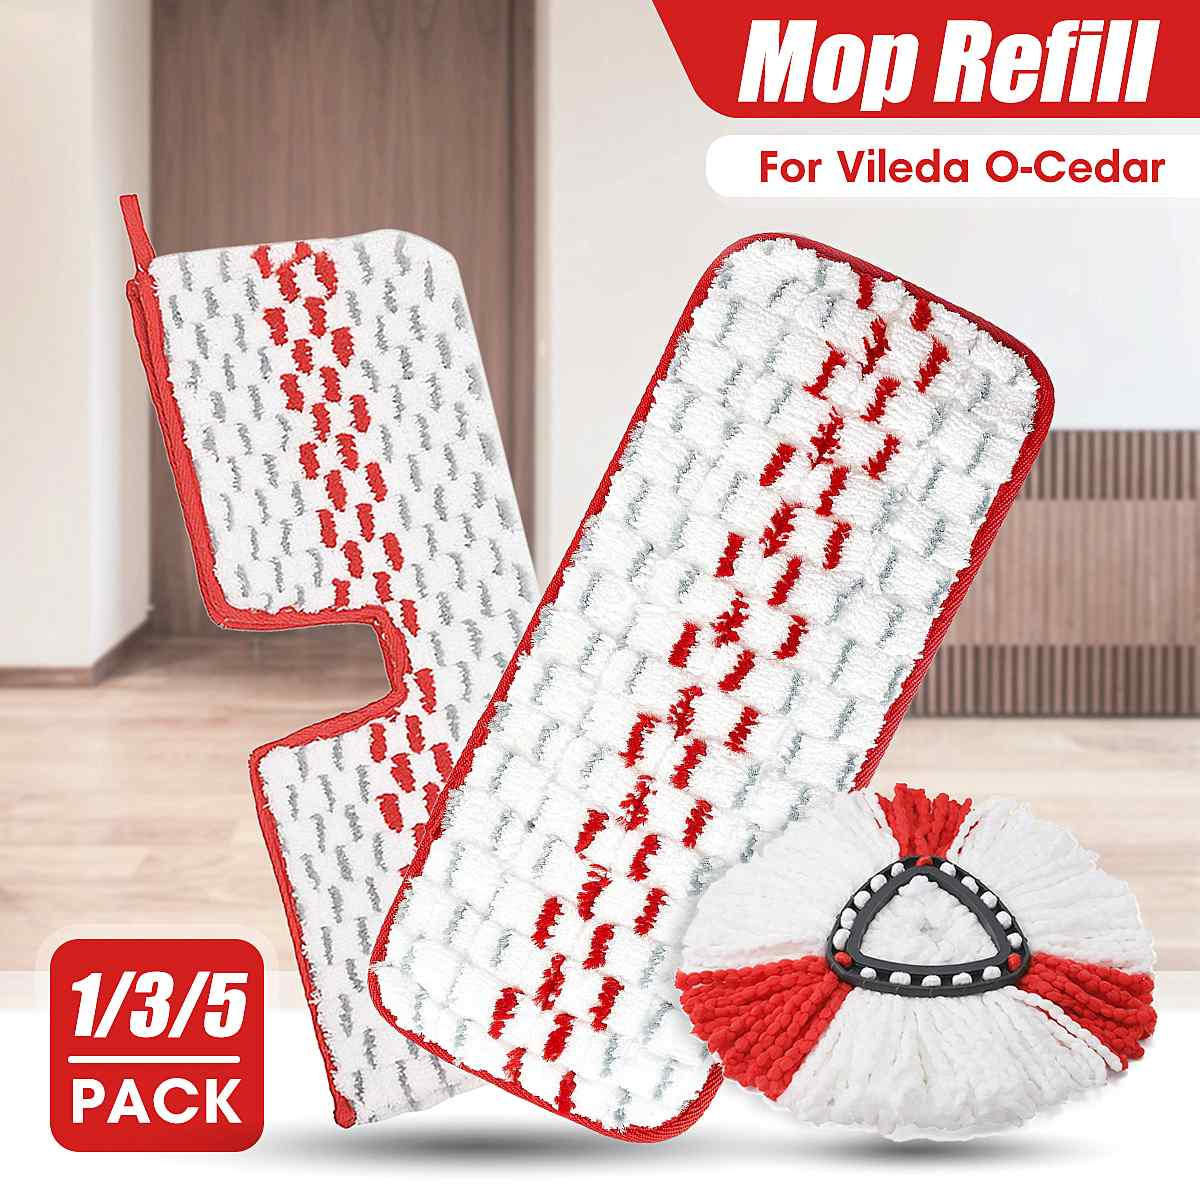 1/3/5pcs Replacement Head Easy Microfiber Spin Mop Refill Floor Mop Head Housekeeper Home Floor Cleaning for Vileda O-Cedar(China)